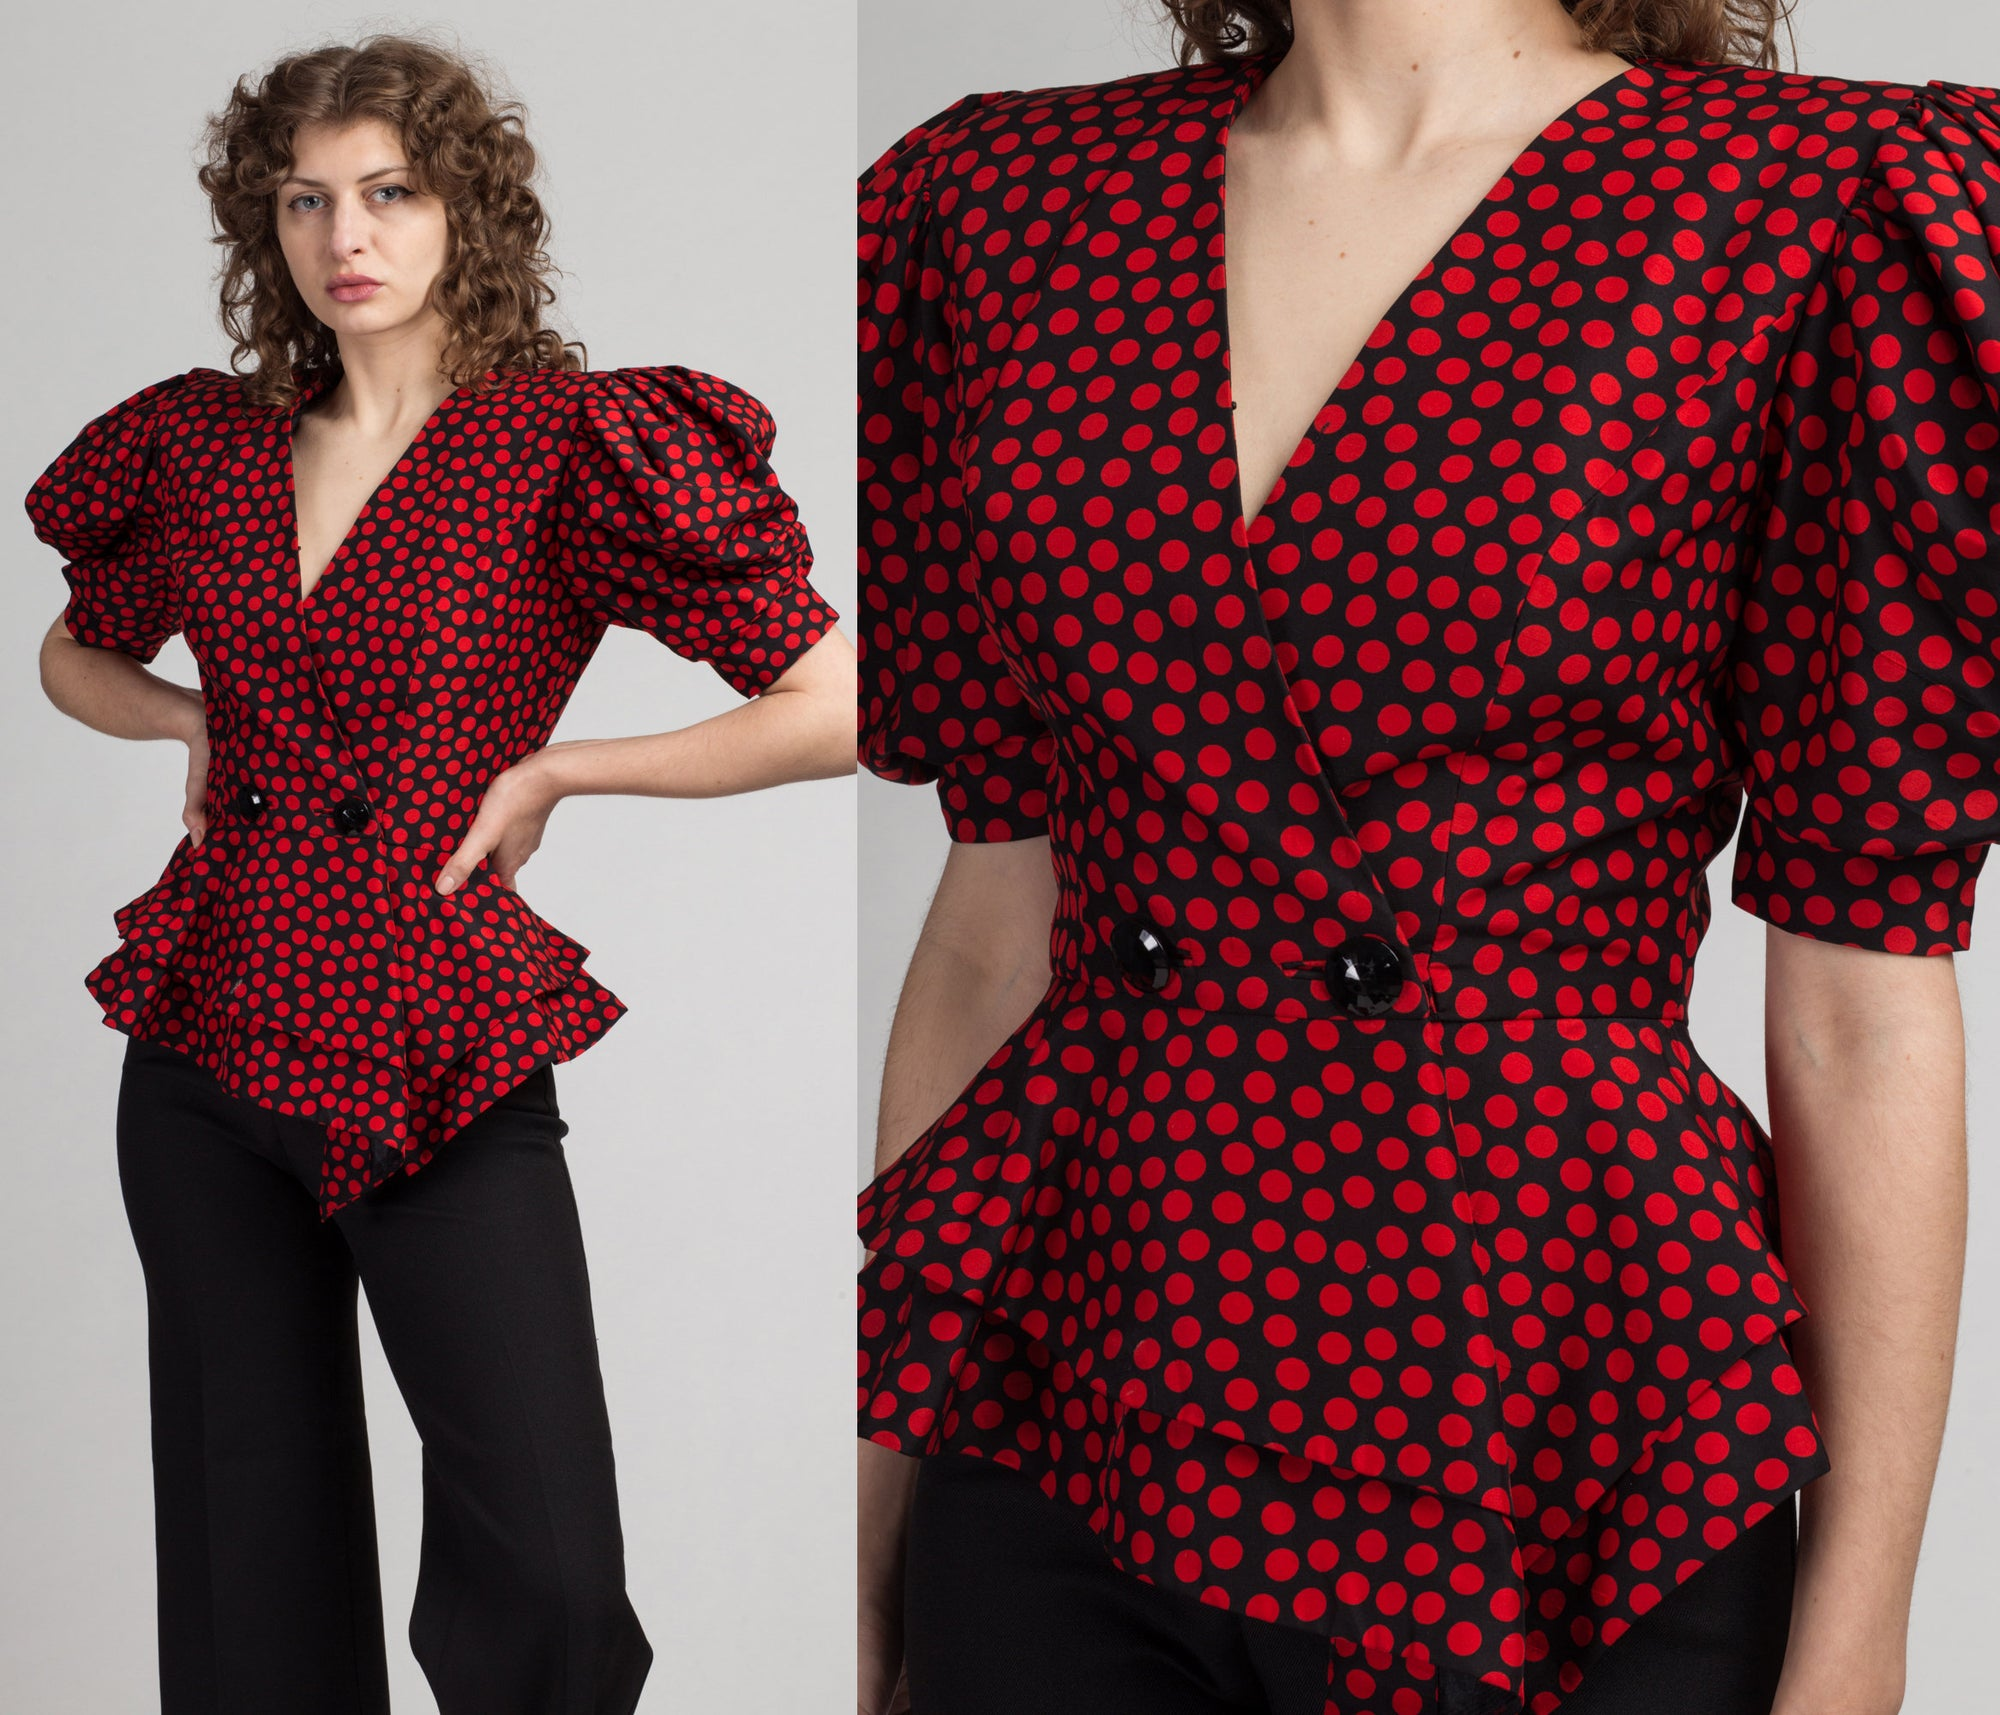 80s Raul Blanco Red Silk Polka Dot Puff Sleeve Blouse - Small to Medium | Vintage Neiman Marcus Designer Fitted Waist Wrap Top